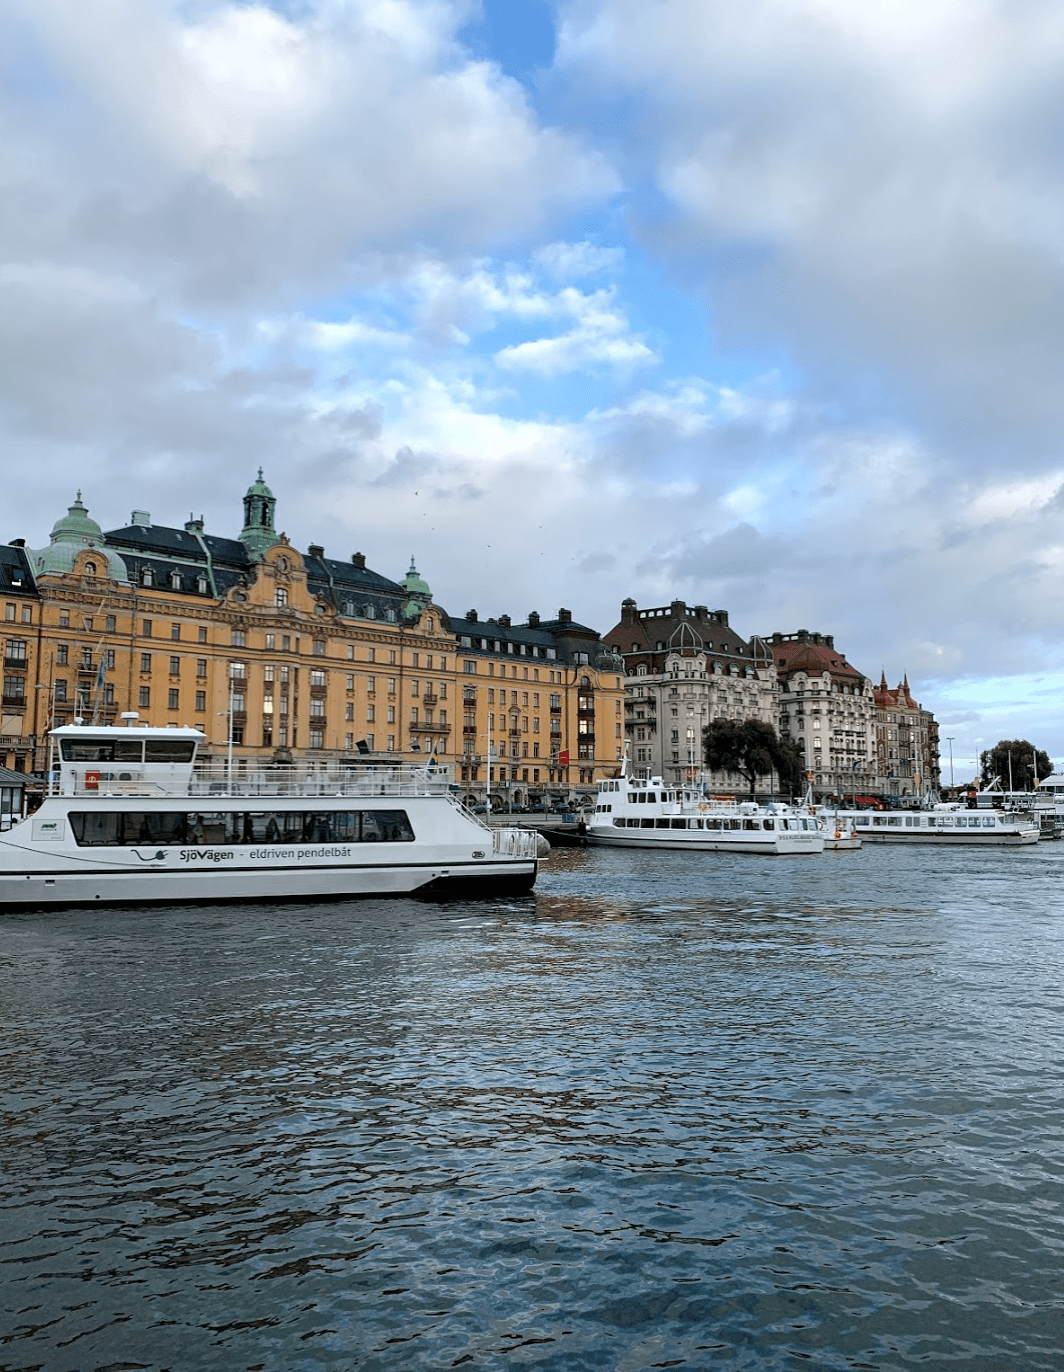 Views of the water in Stockholm, Sweden